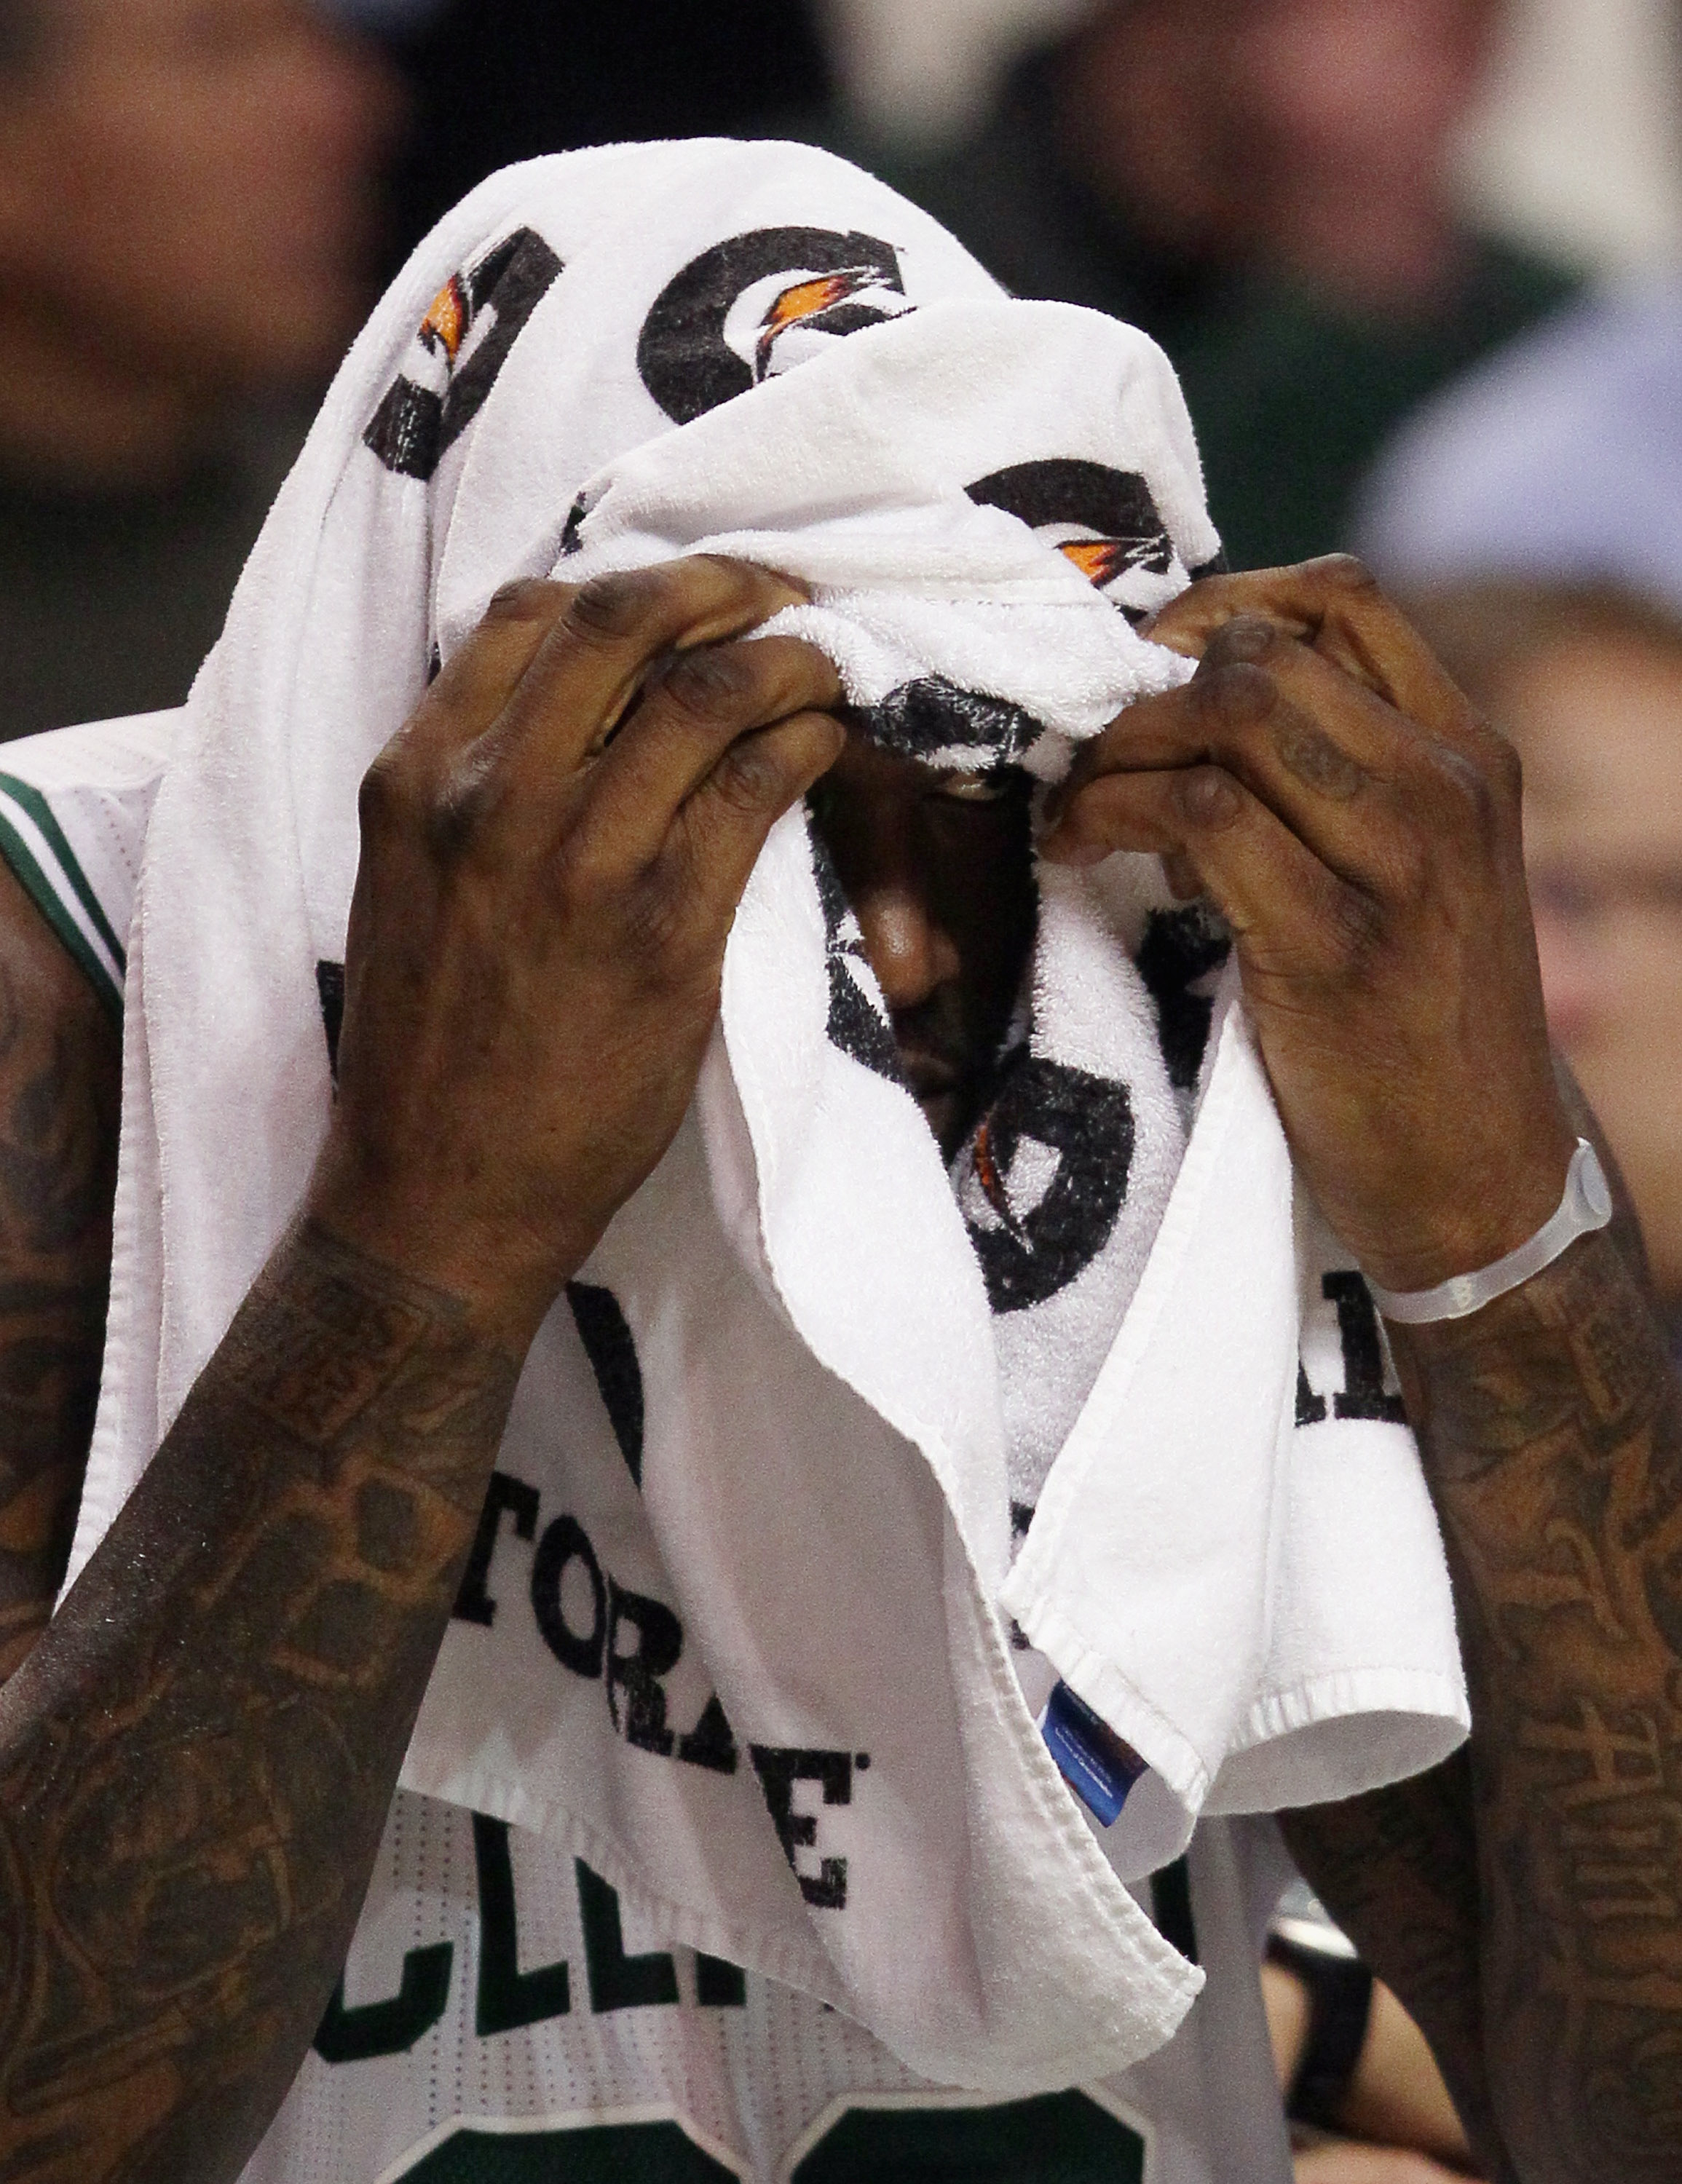 BOSTON, MA - JANUARY 03:  Shaquille O'Neal #36 of the Boston Celtics peaks out from under a towel in the second half against the Minnesota Timberwolves on January 3, 2011 at the TD Garden in Boston, Massachusetts. The Celtics defeated the Timberwolves 96-